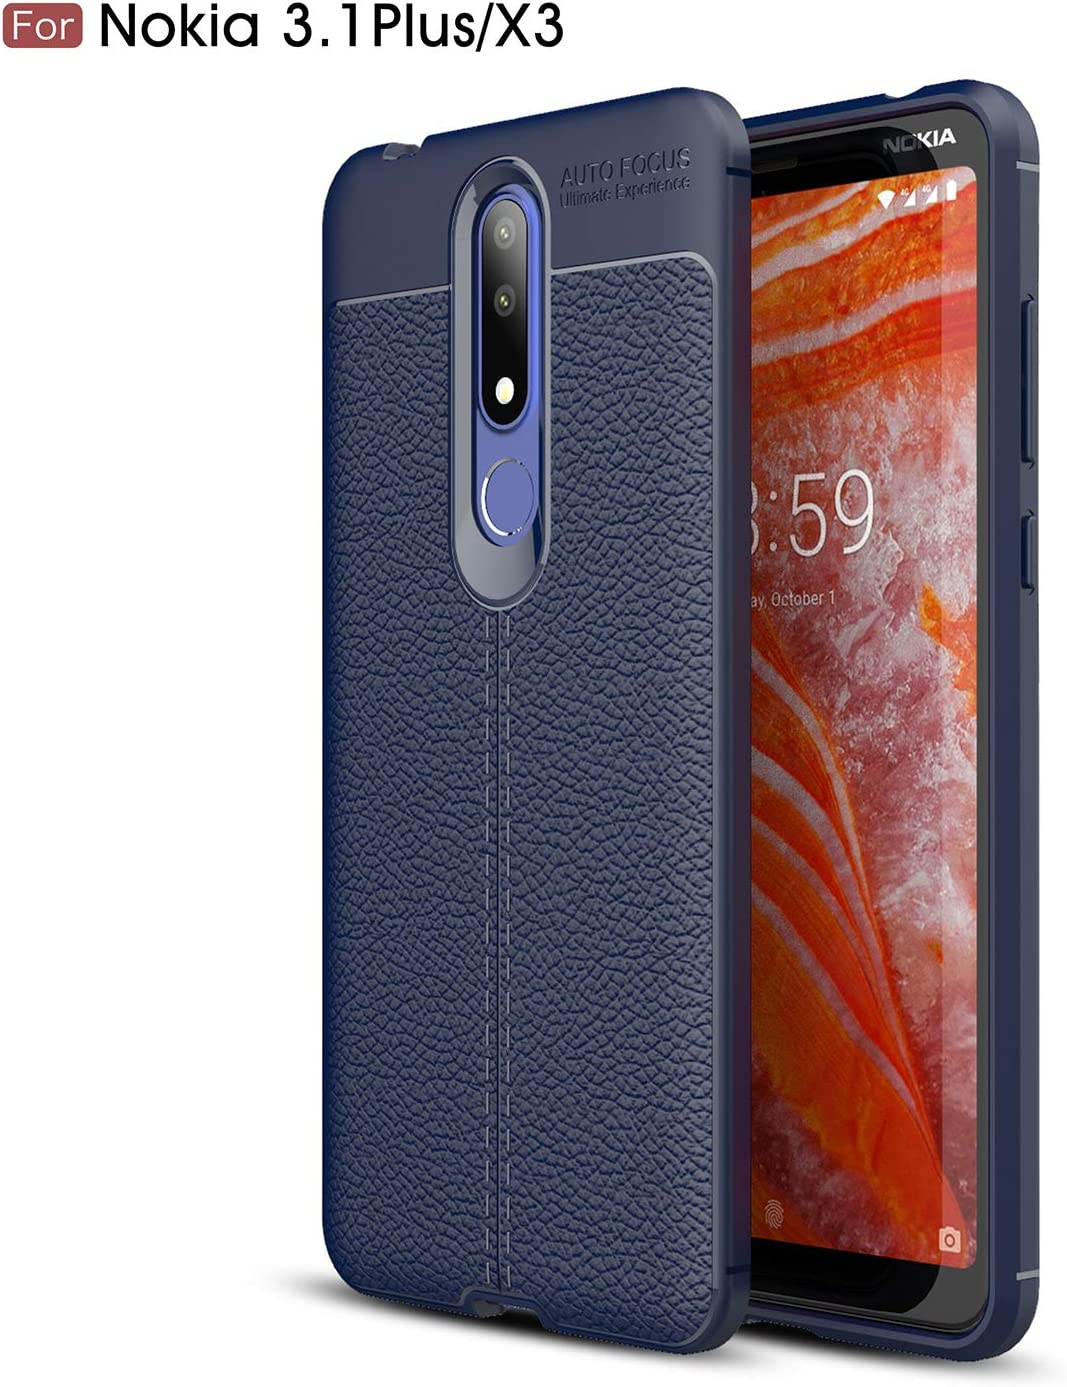 Cruzerlite Funda Nokia 3.1 Plus, Flexible Slim Case with Leather Texture Grip Pattern and Shock Absorption TPU Cover for Nokia 3.1 Plus (2018) (Blue): Amazon.es: Electrónica